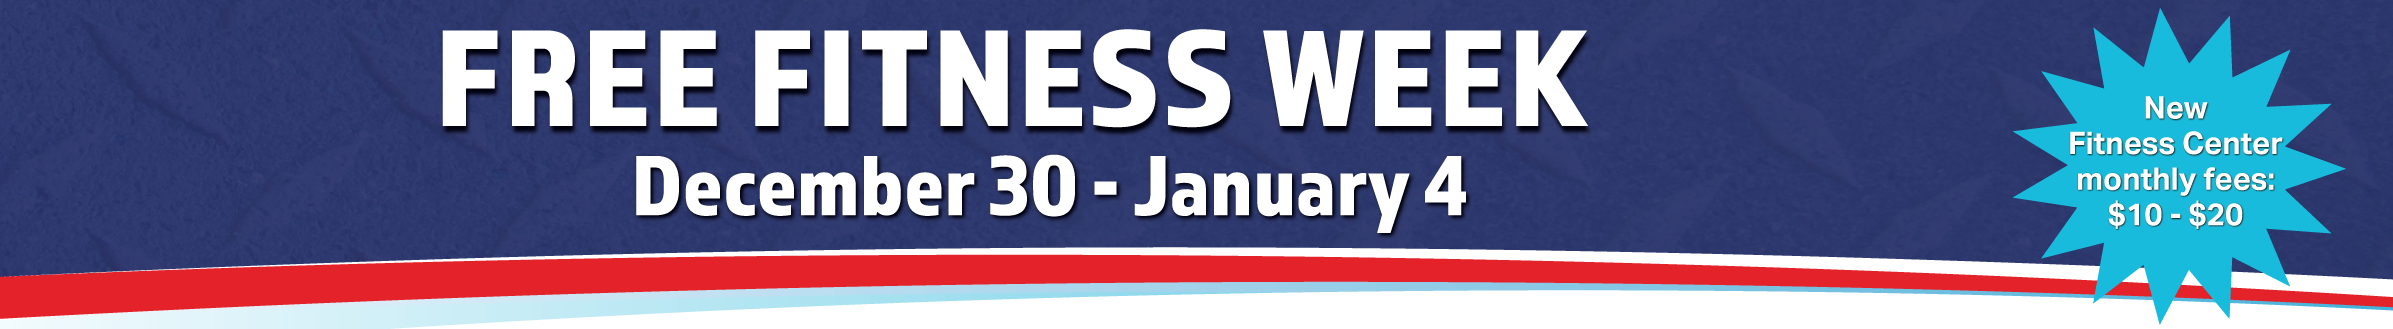 Free Fitness Week | December 30 - January 4